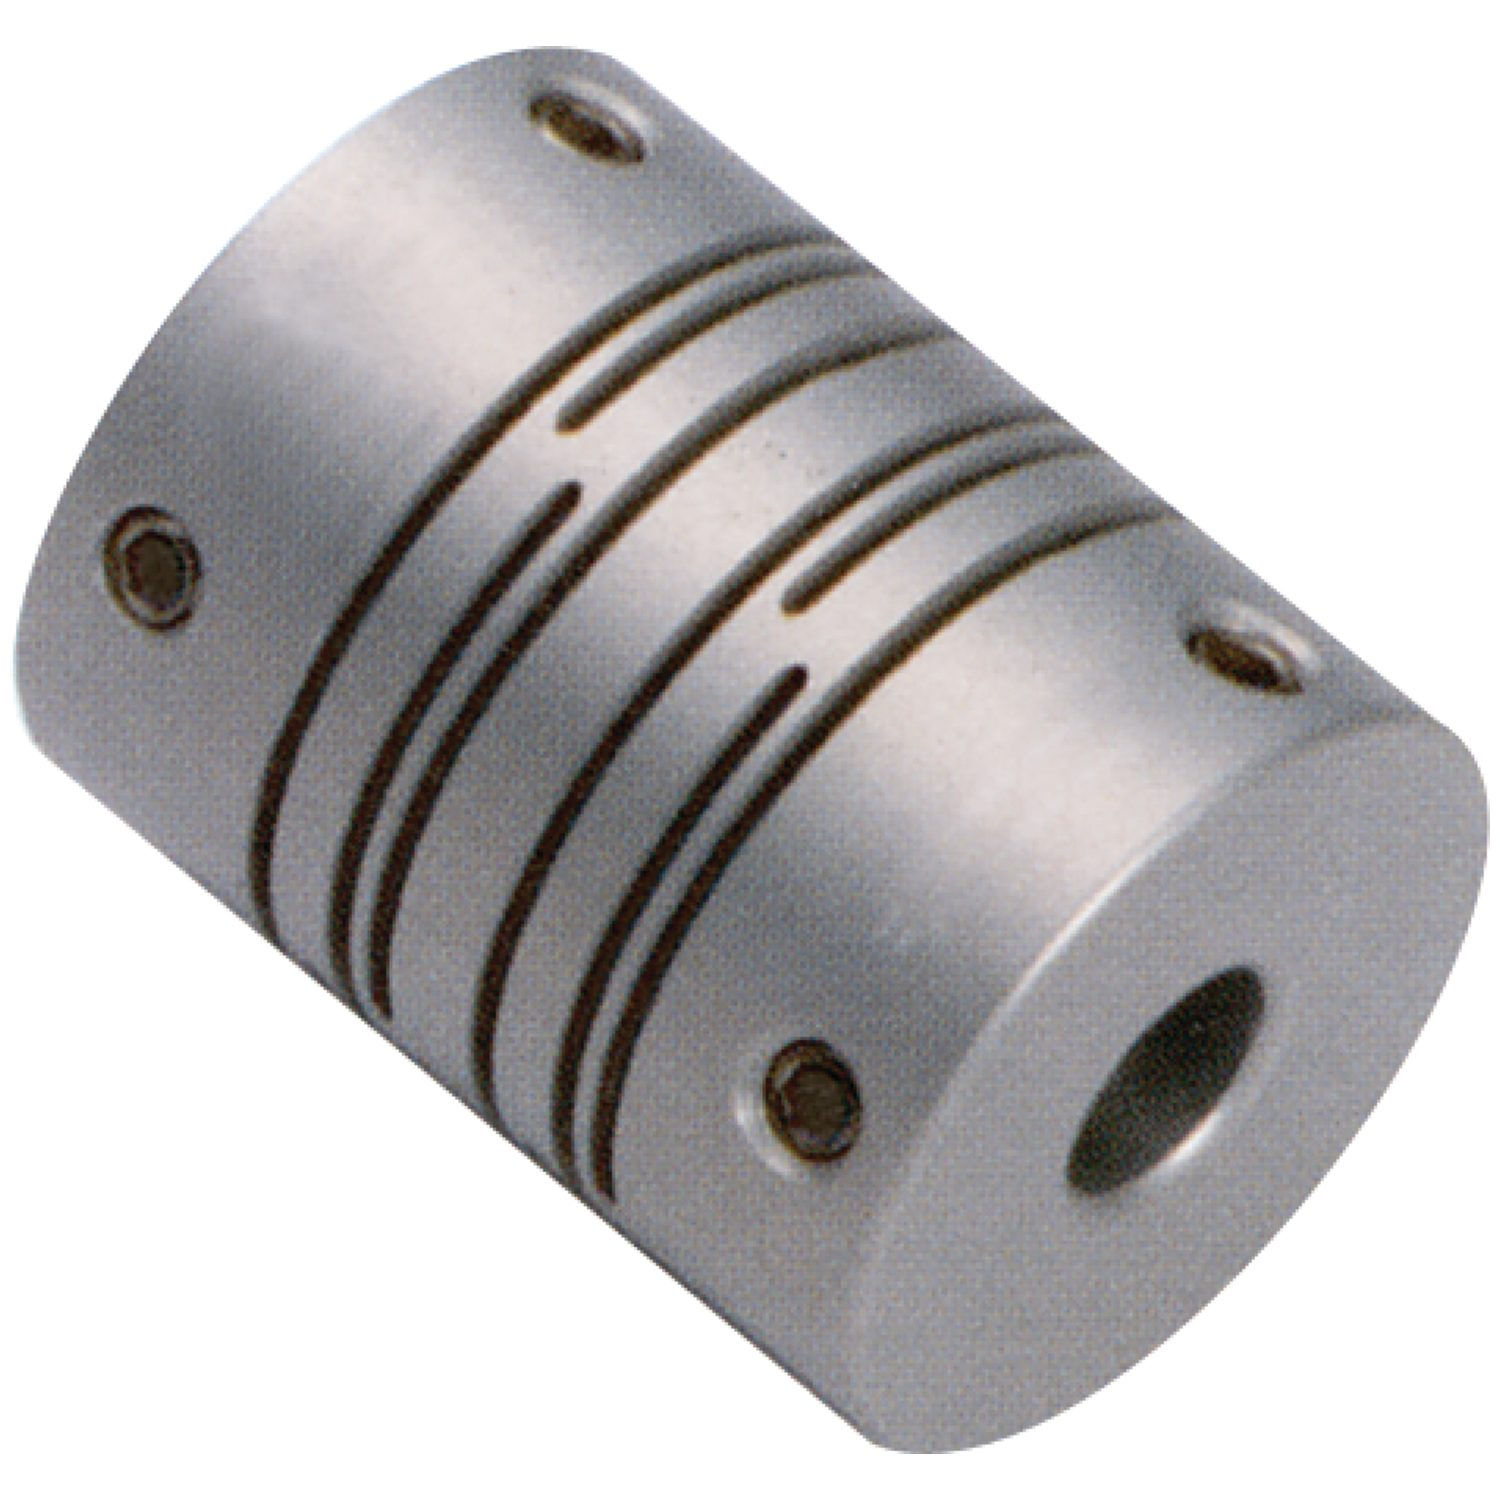 Beamed couplings